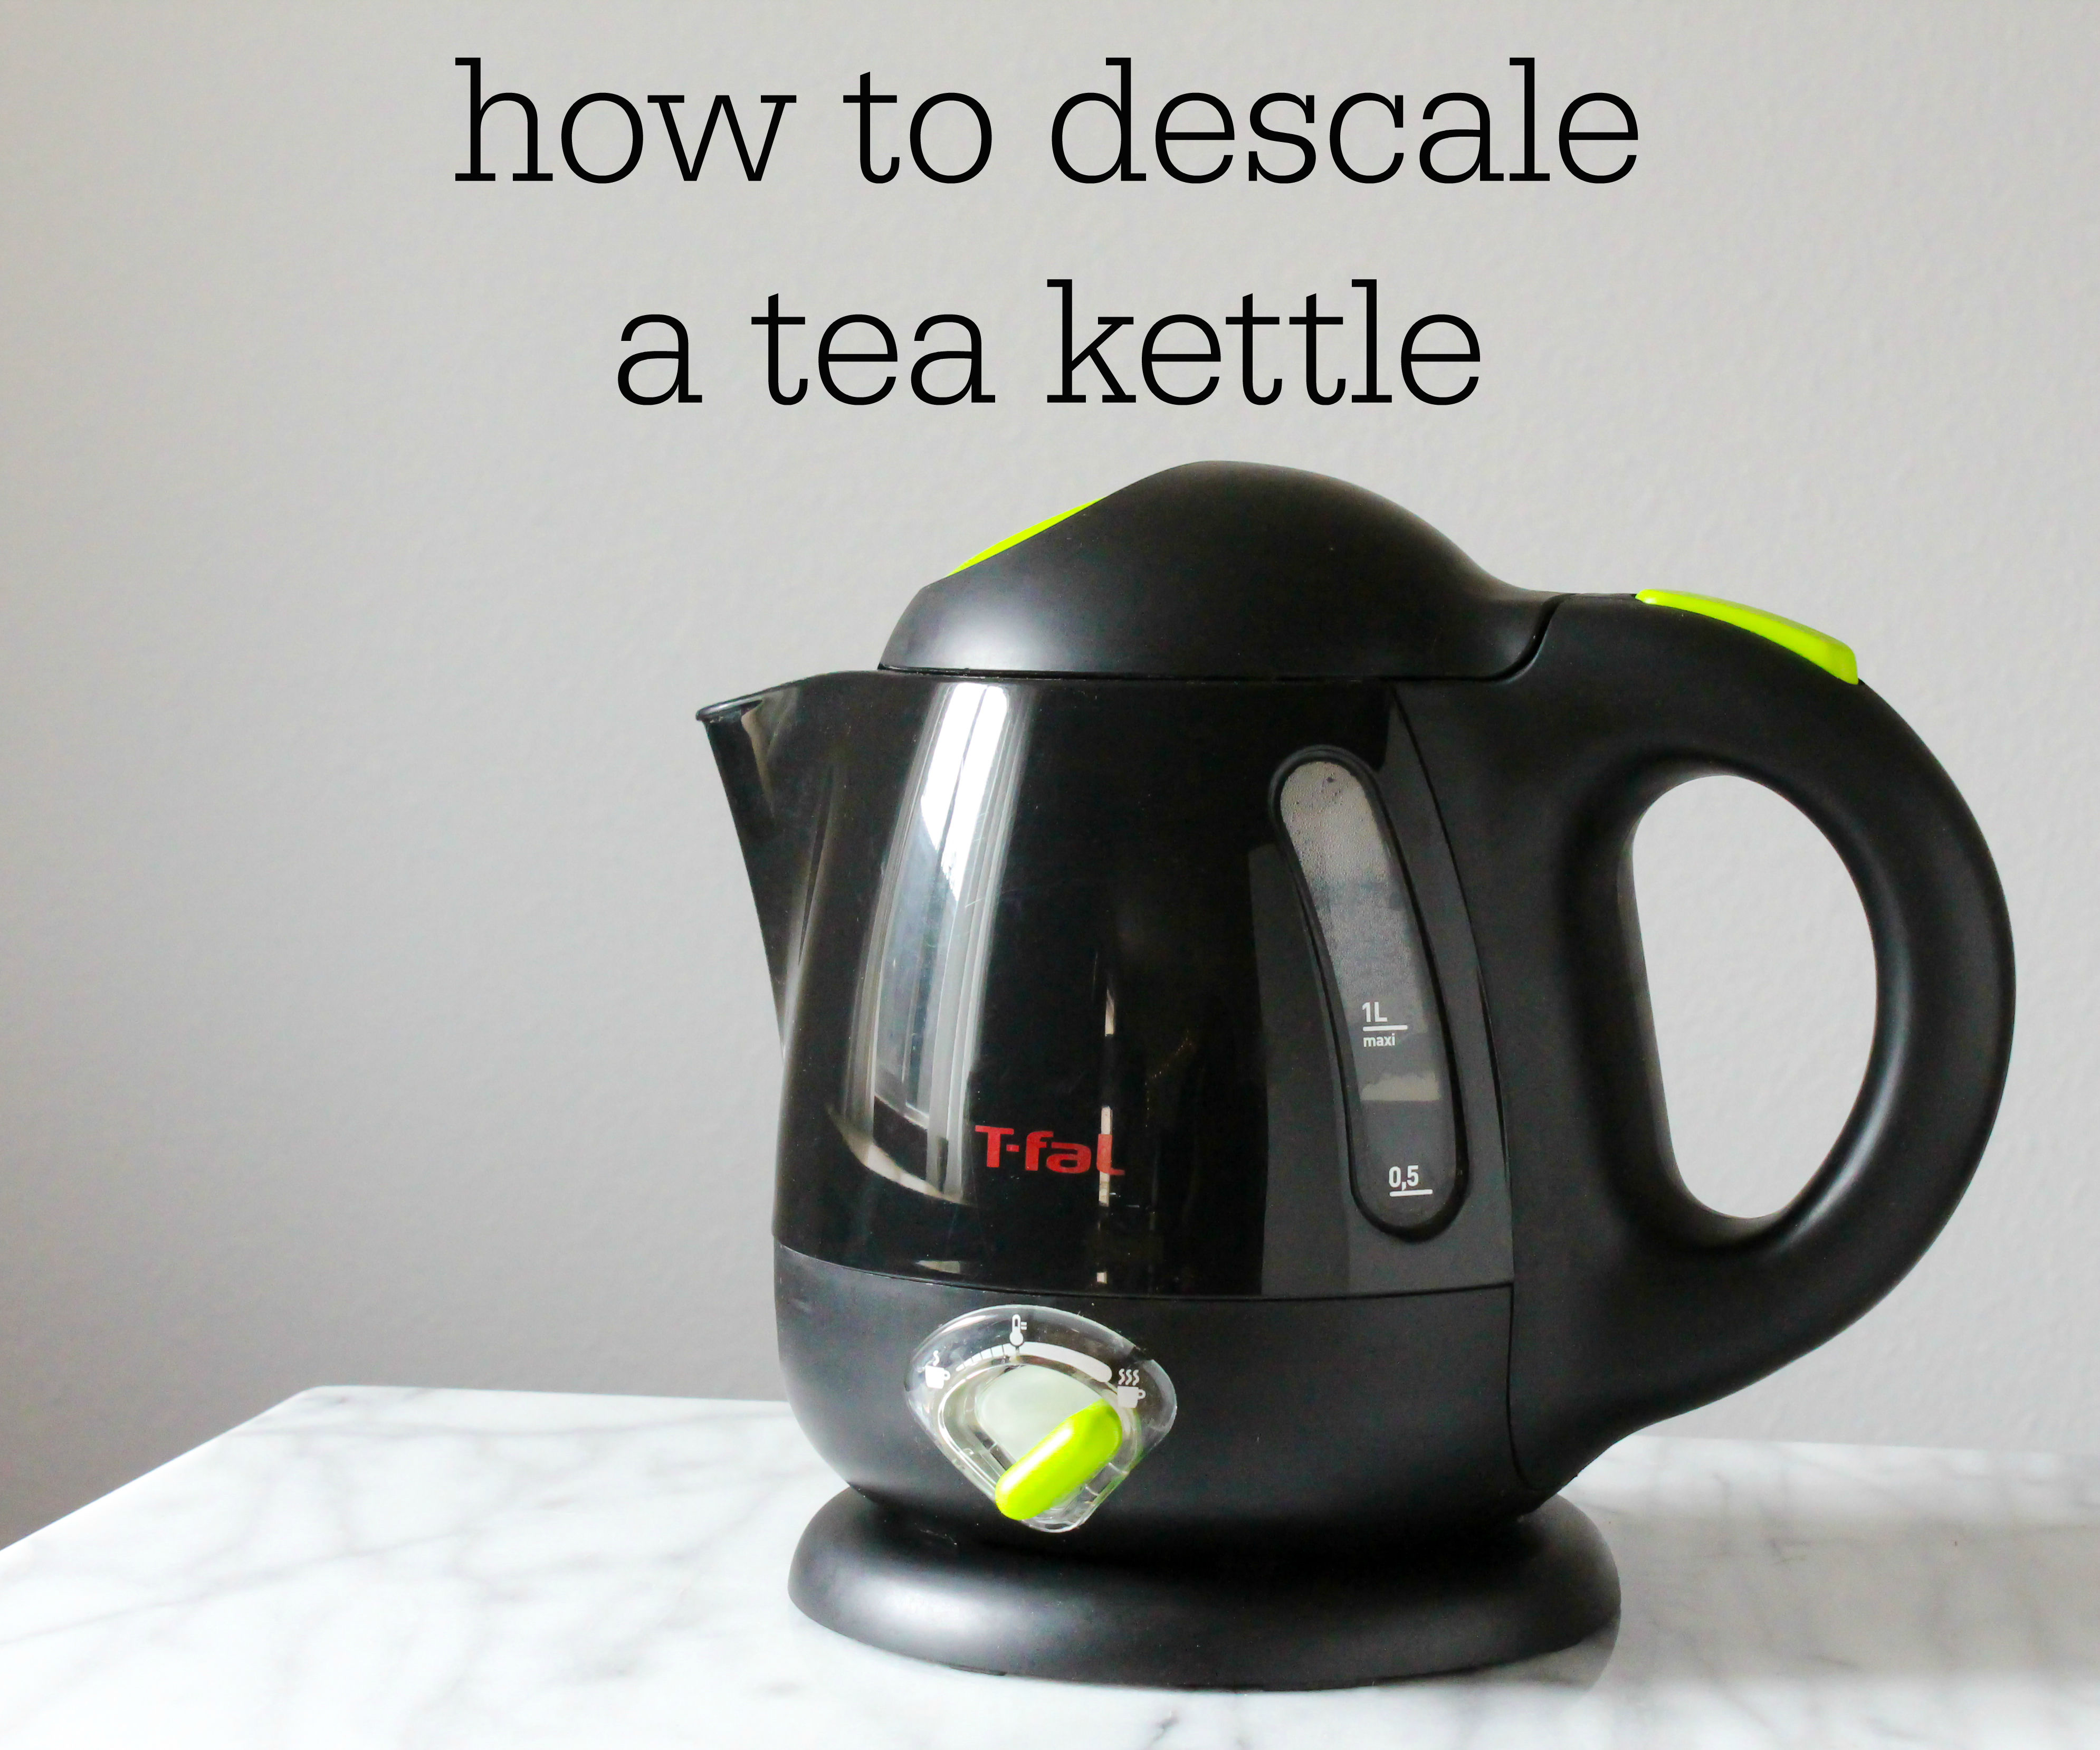 How to Descale a Tea Kettle